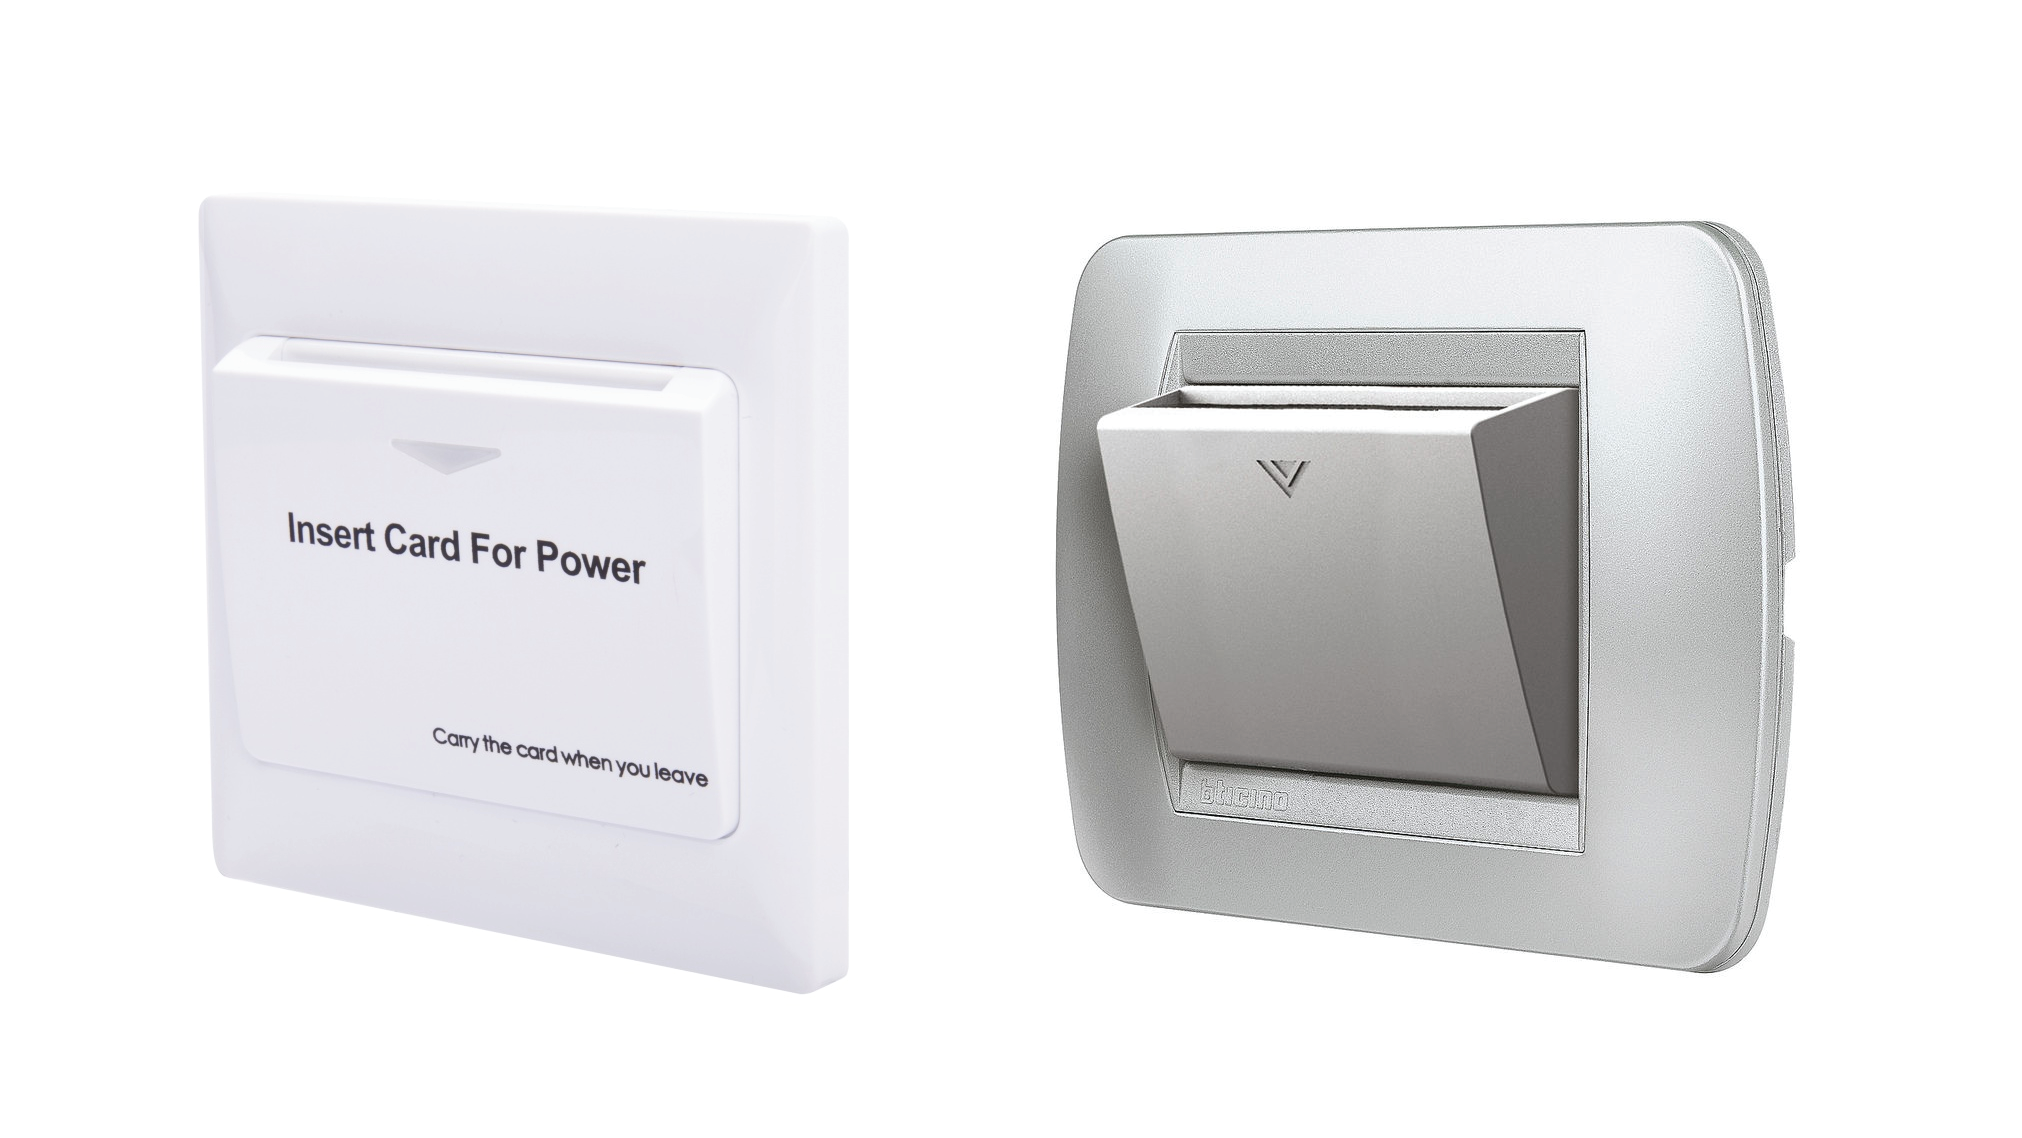 Hotel Power Key Cards System In Bangladesh With Images Hotel